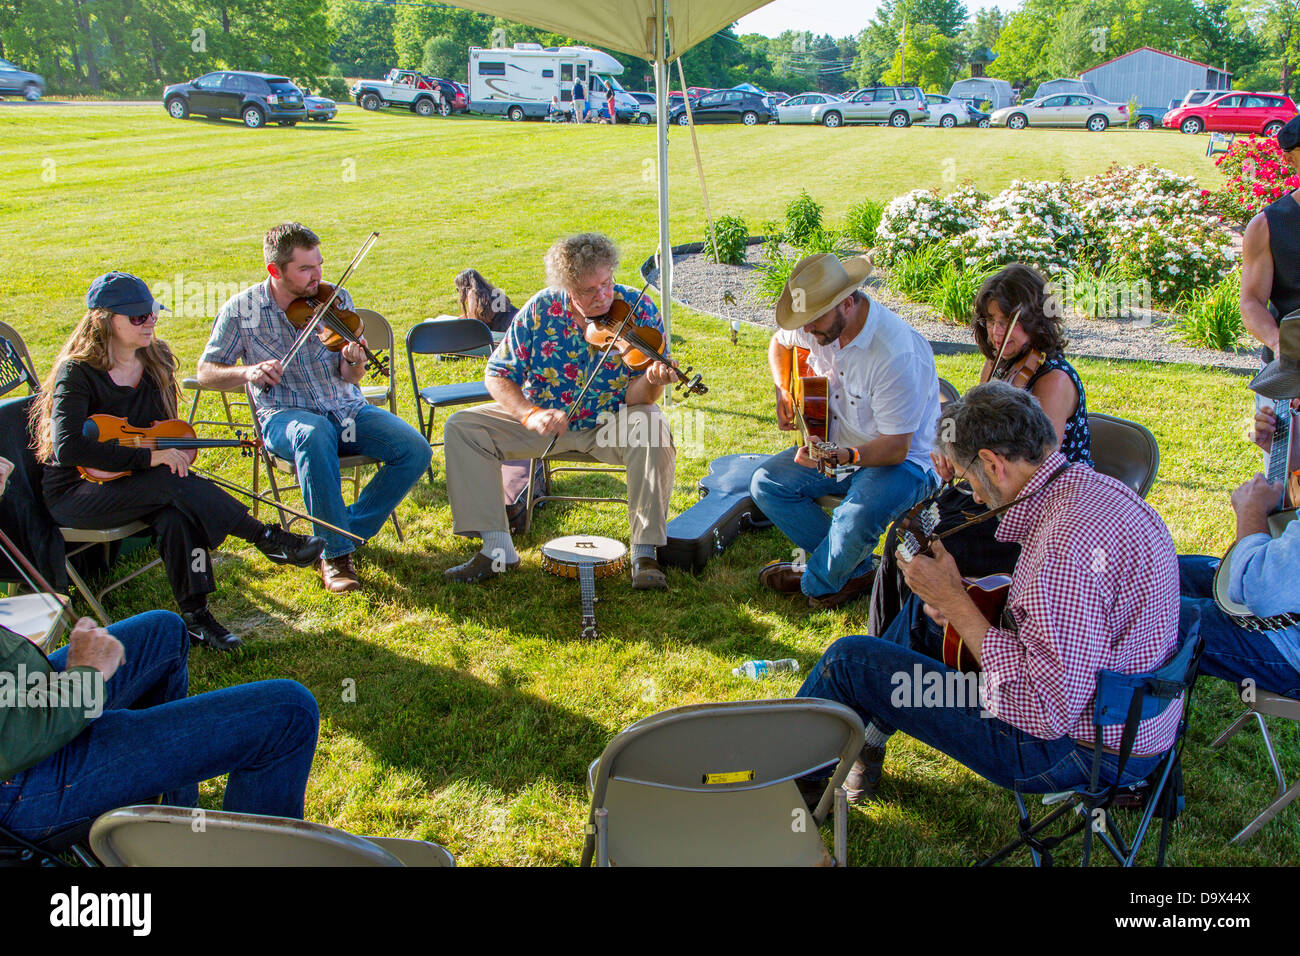 Jam tent at Old Time Fiddlers Gathering at Lakewood Vineyards on Seneca lake in the Finger Lakes region of New York - Stock Image